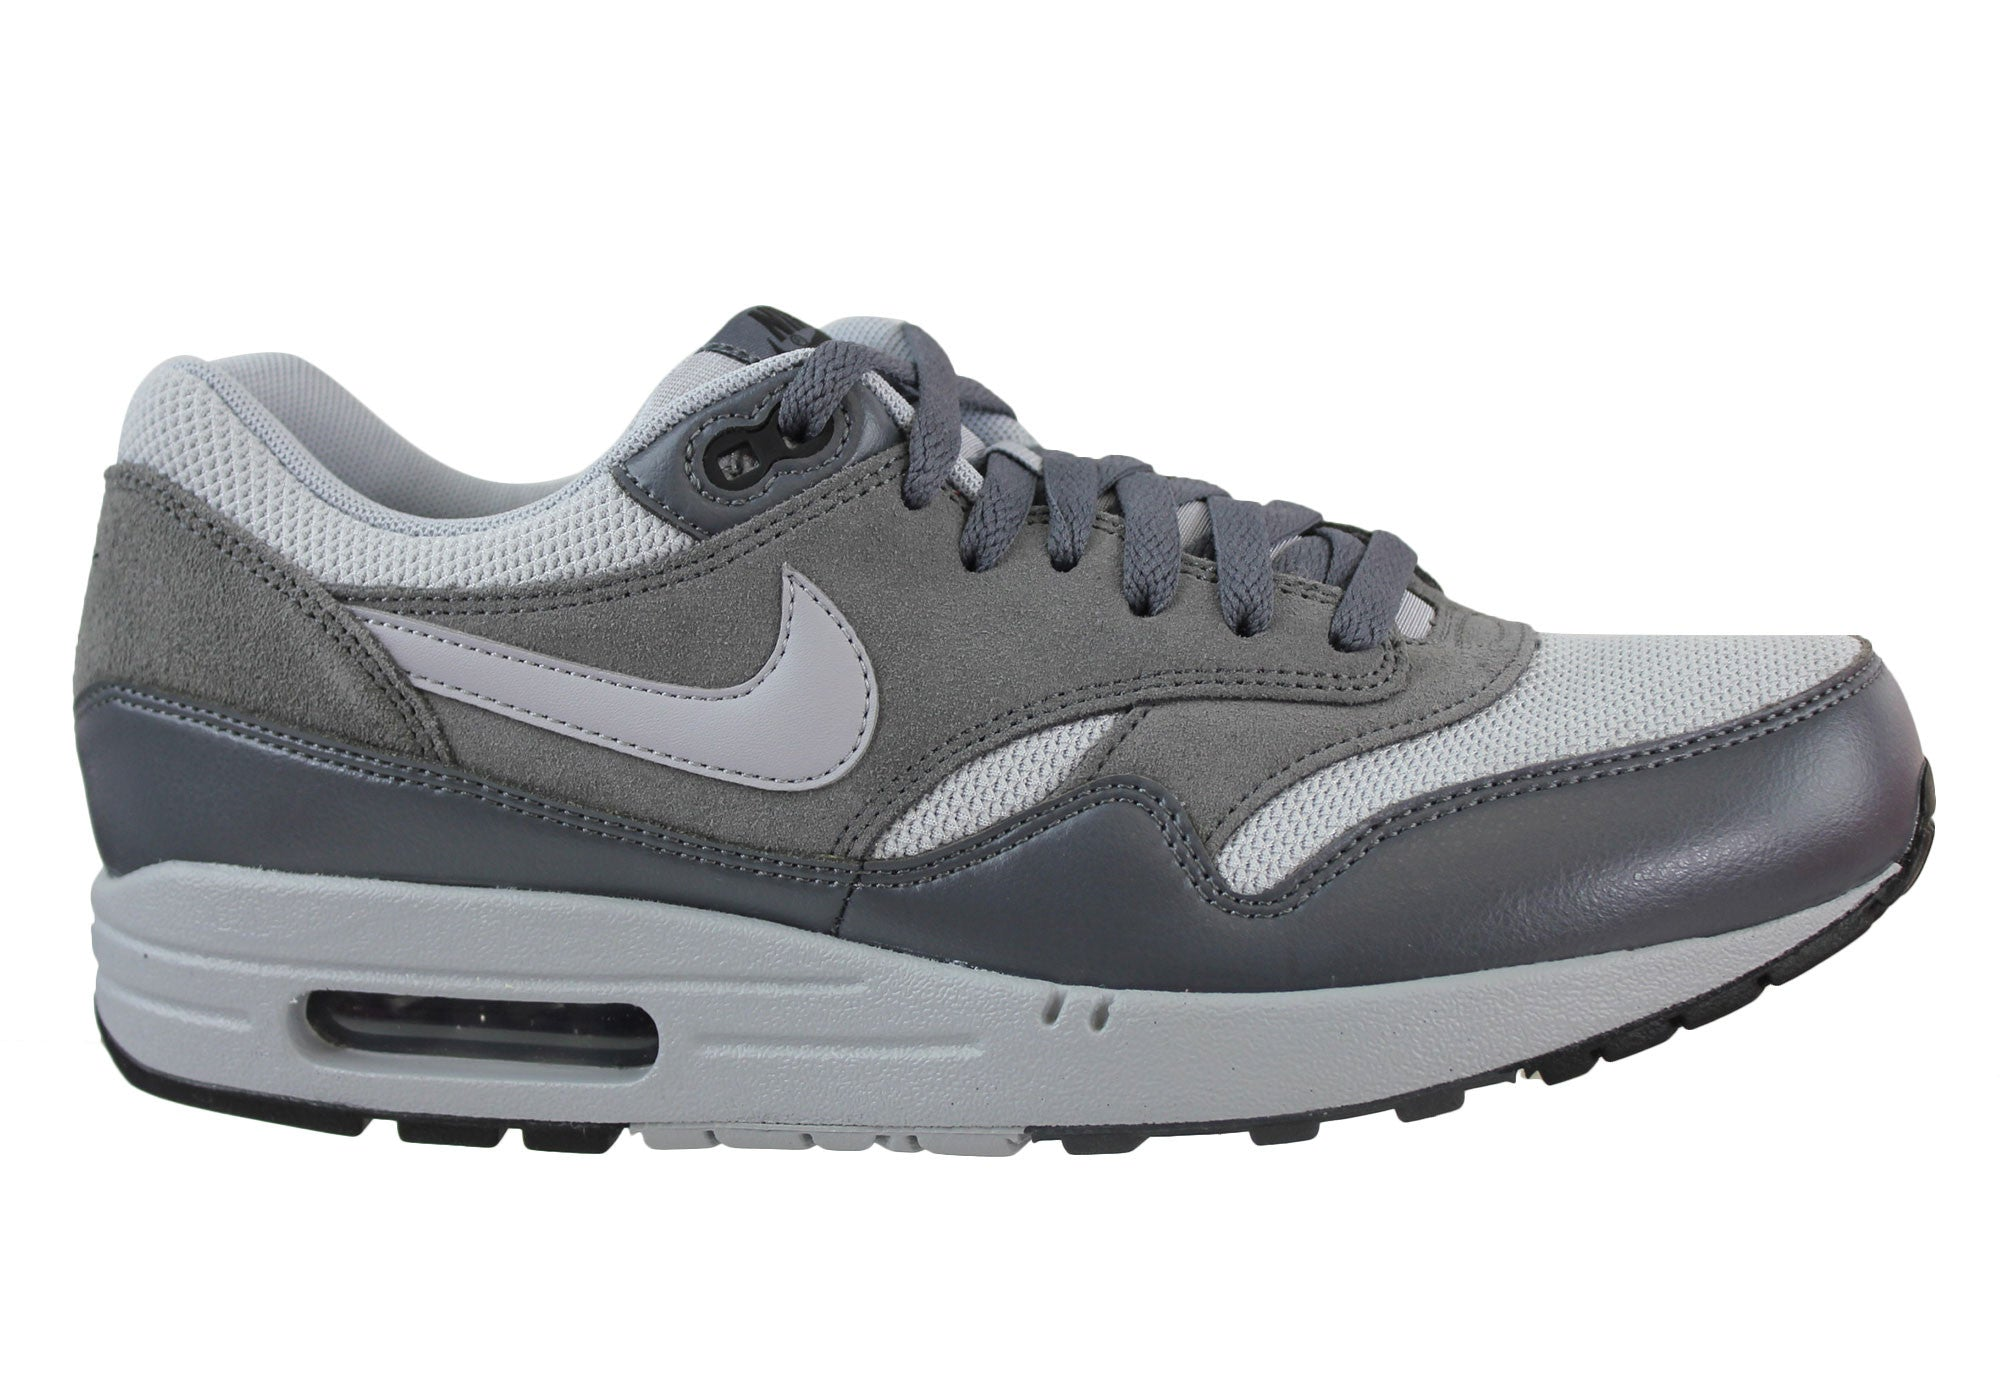 finest selection 7d2a2 1160f Home Nike Air Max 1 Essential Mens Casual Shoes. White Red  Wolf Grey ...